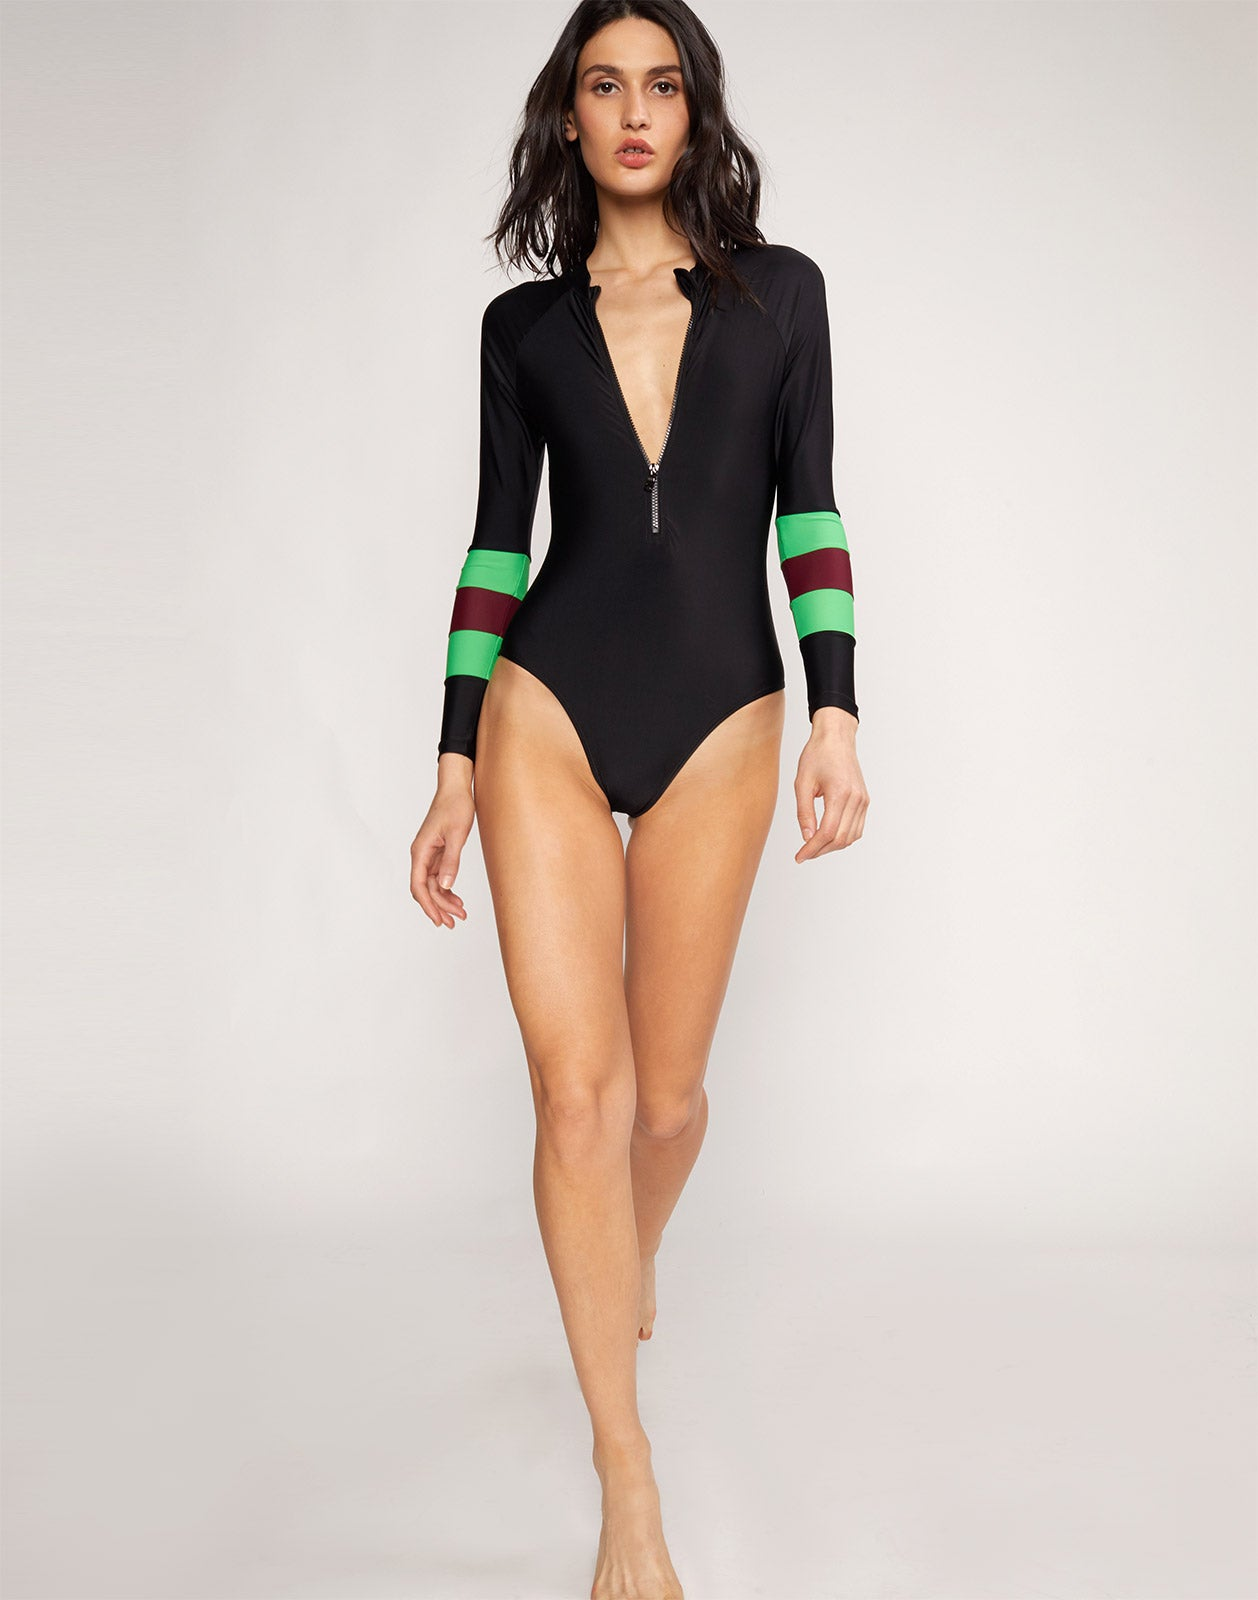 Alternate full body view model wearing Emerald Stripe Hepburn Surfsuit